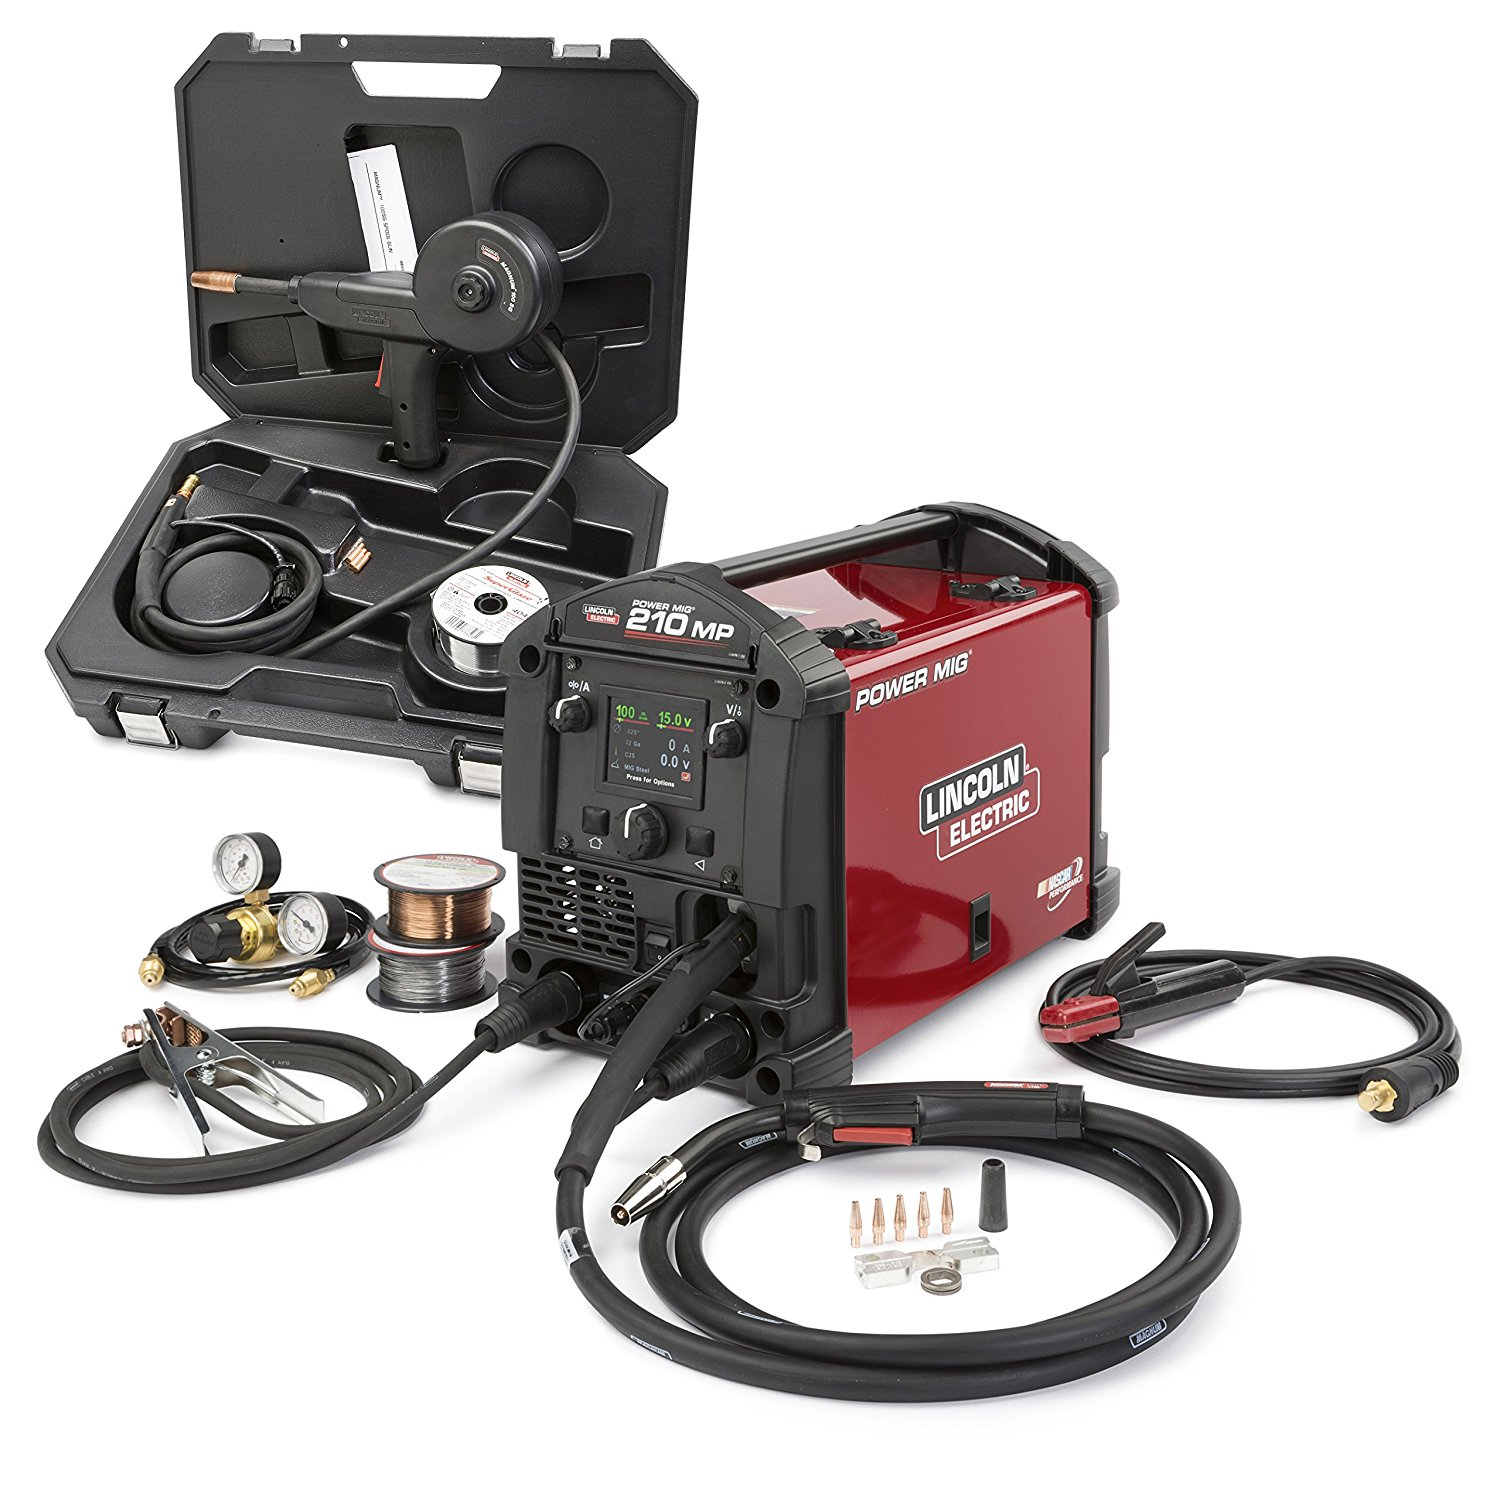 Lincoln Electric POWER MIG 210 MP Multi-Process Welder Aluminum